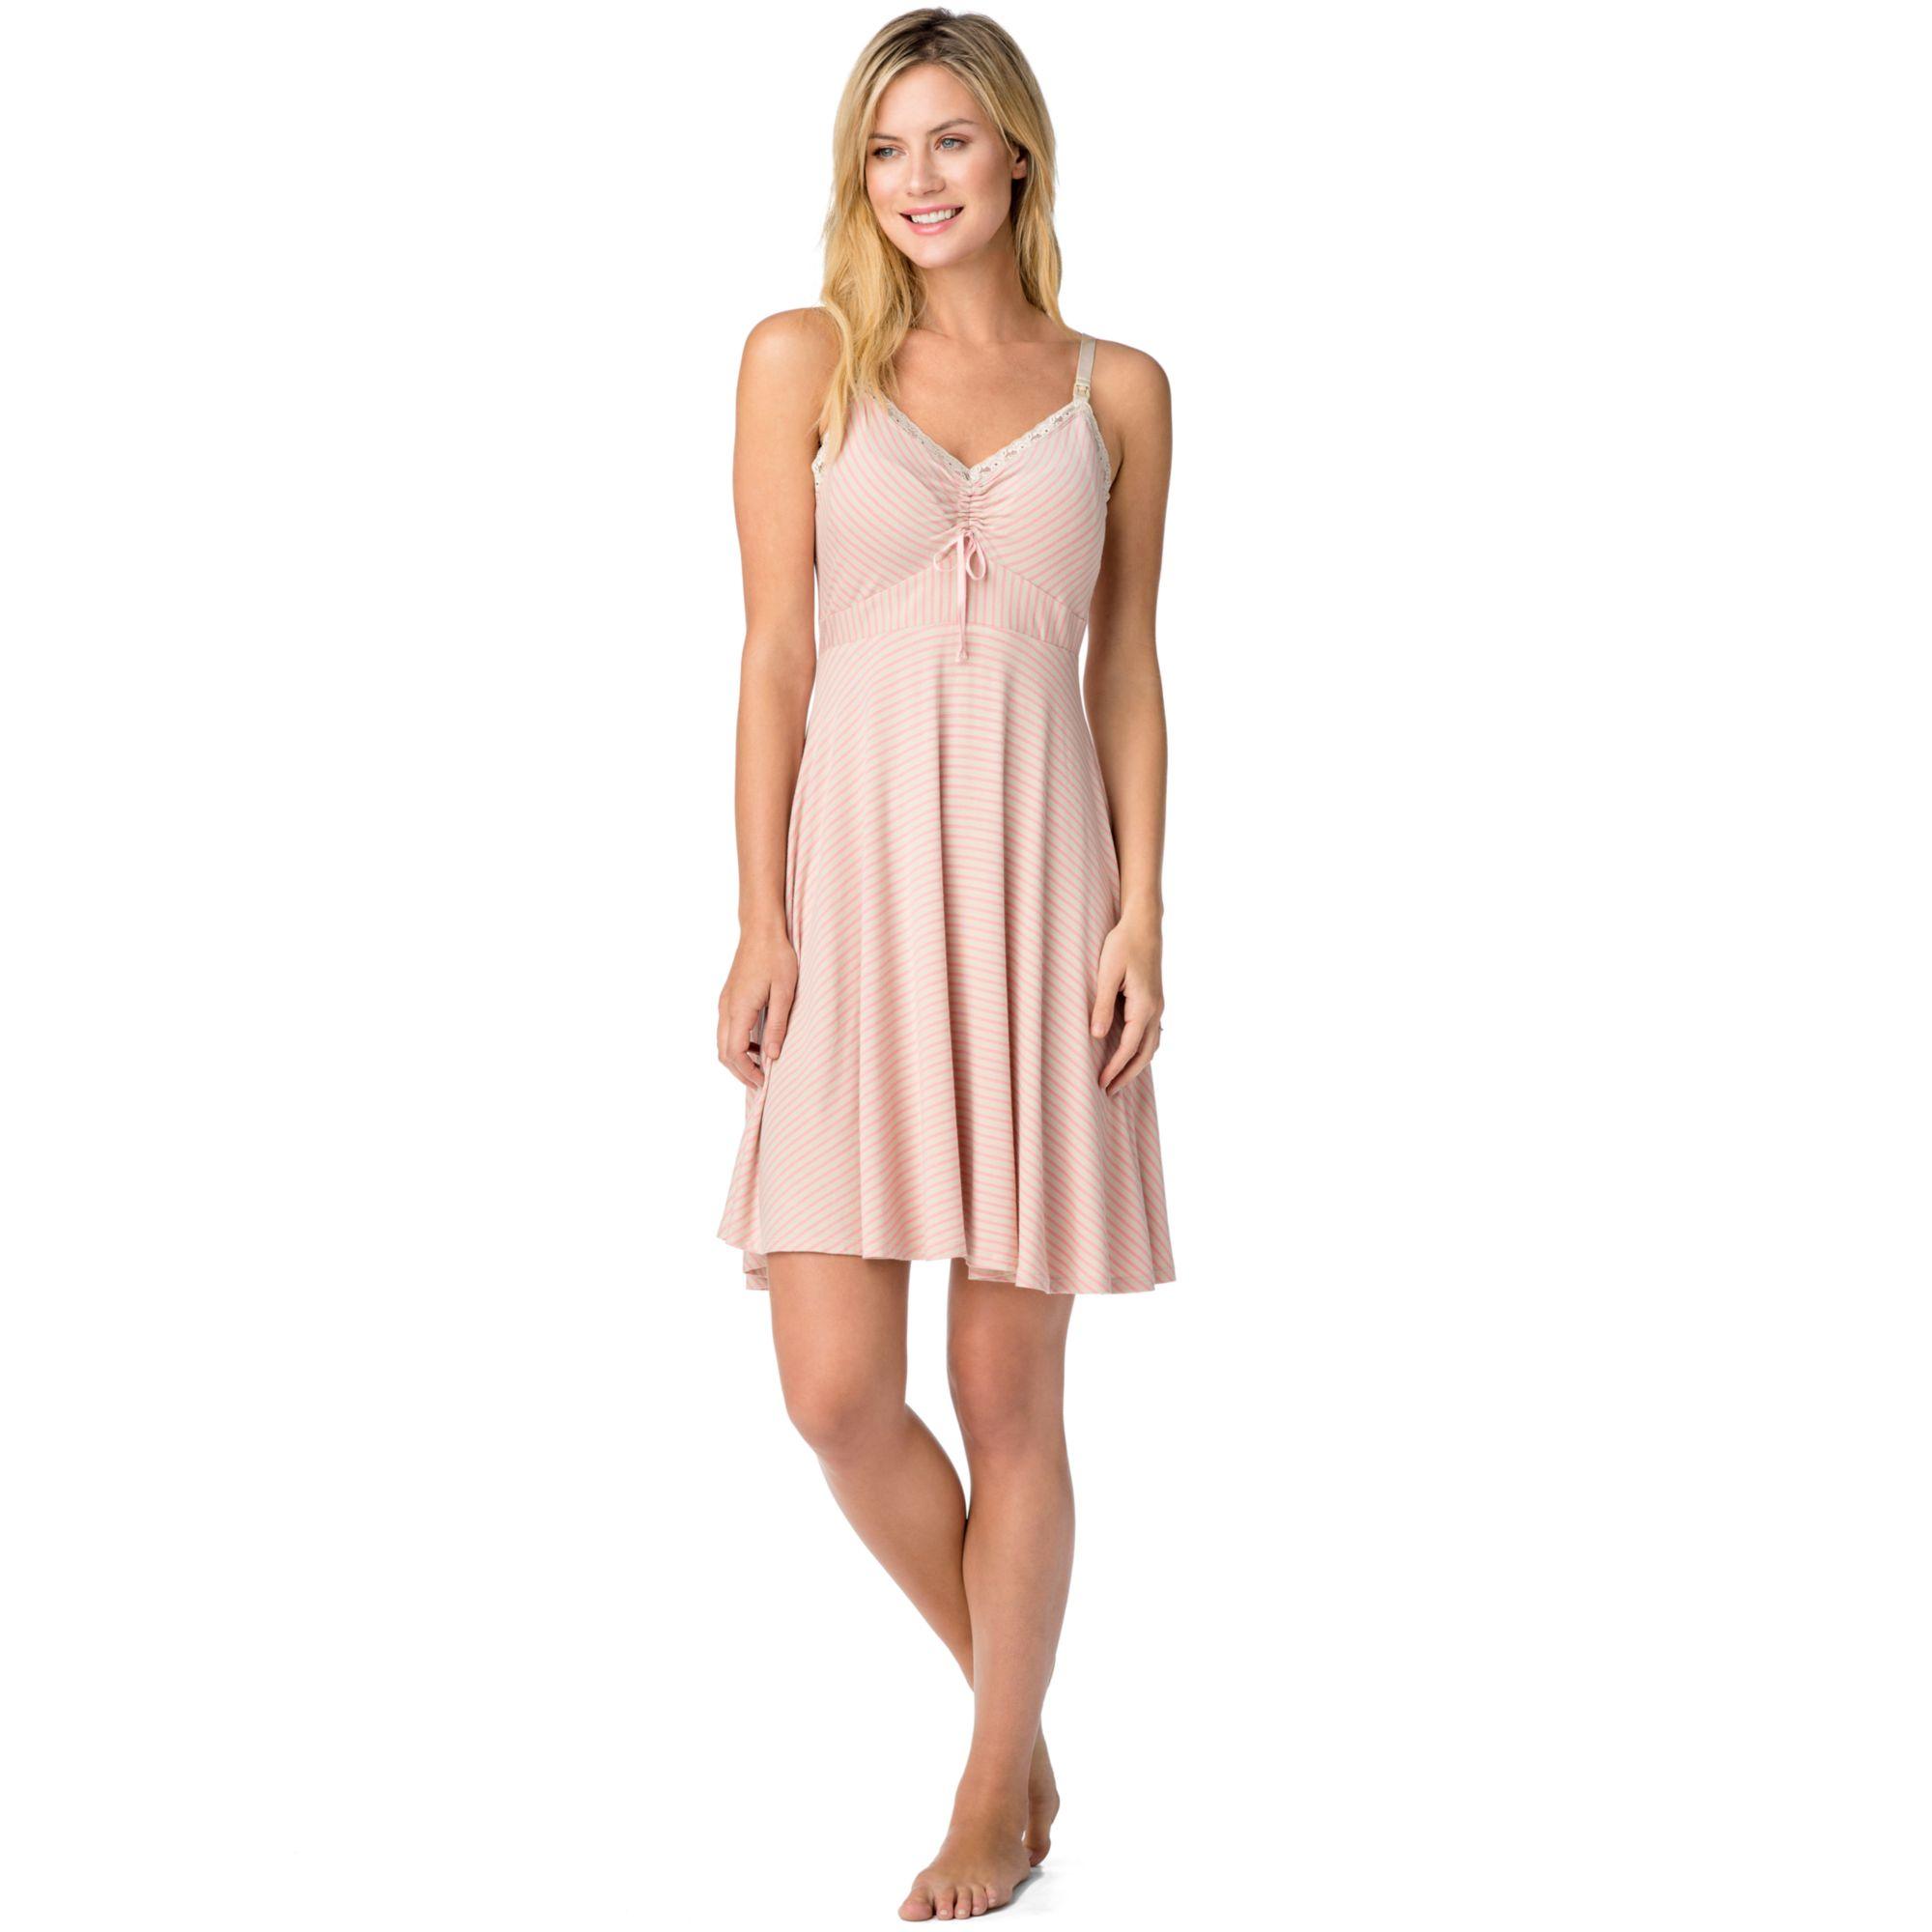 Lyst - Jessica Simpson Maternity Striped Nursing Nightgown in Pink 6a748260d